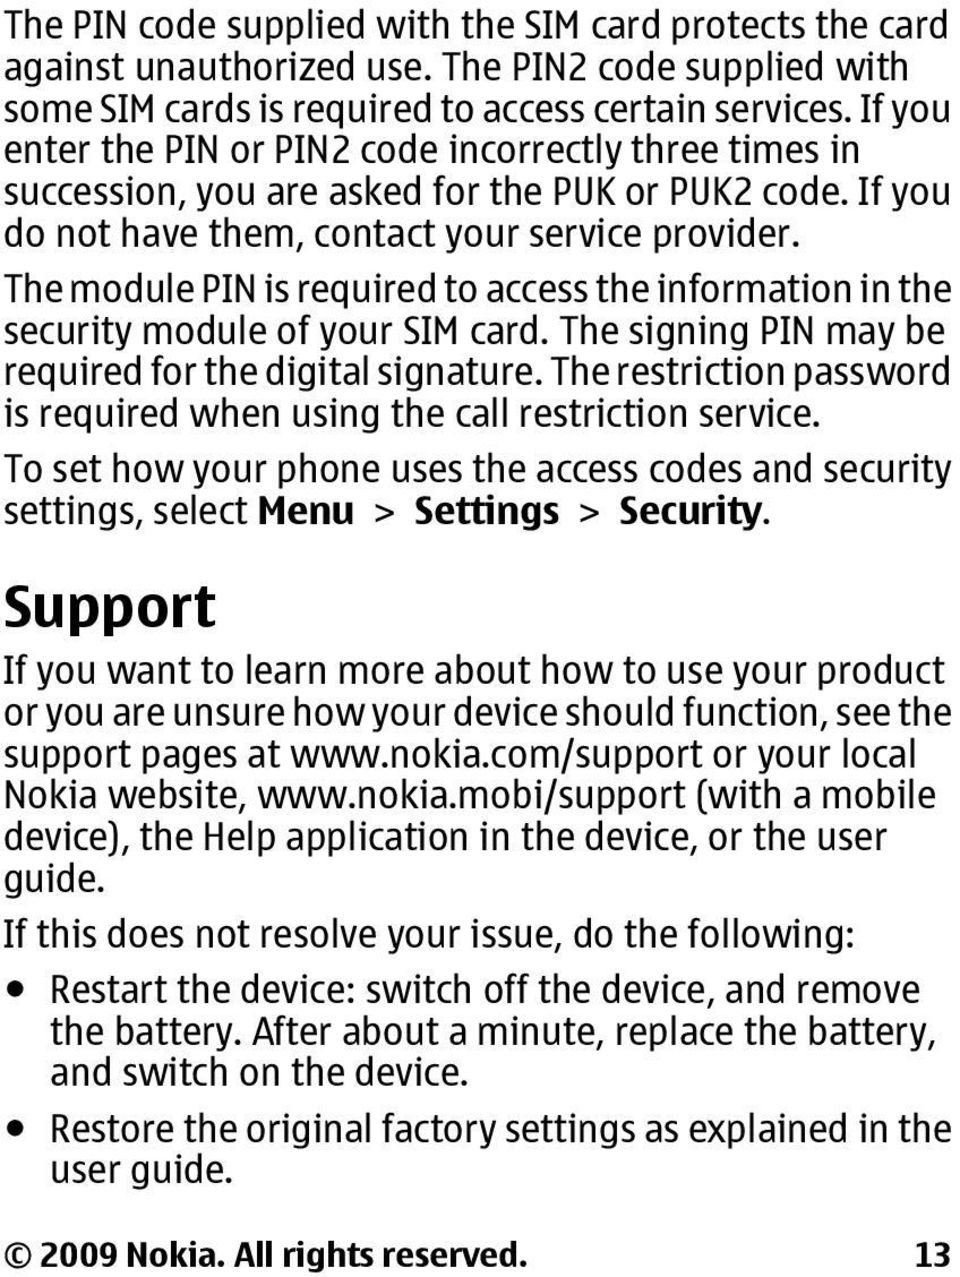 The module PIN is required to access the information in the security module of your SIM card. The signing PIN may be required for the digital signature.